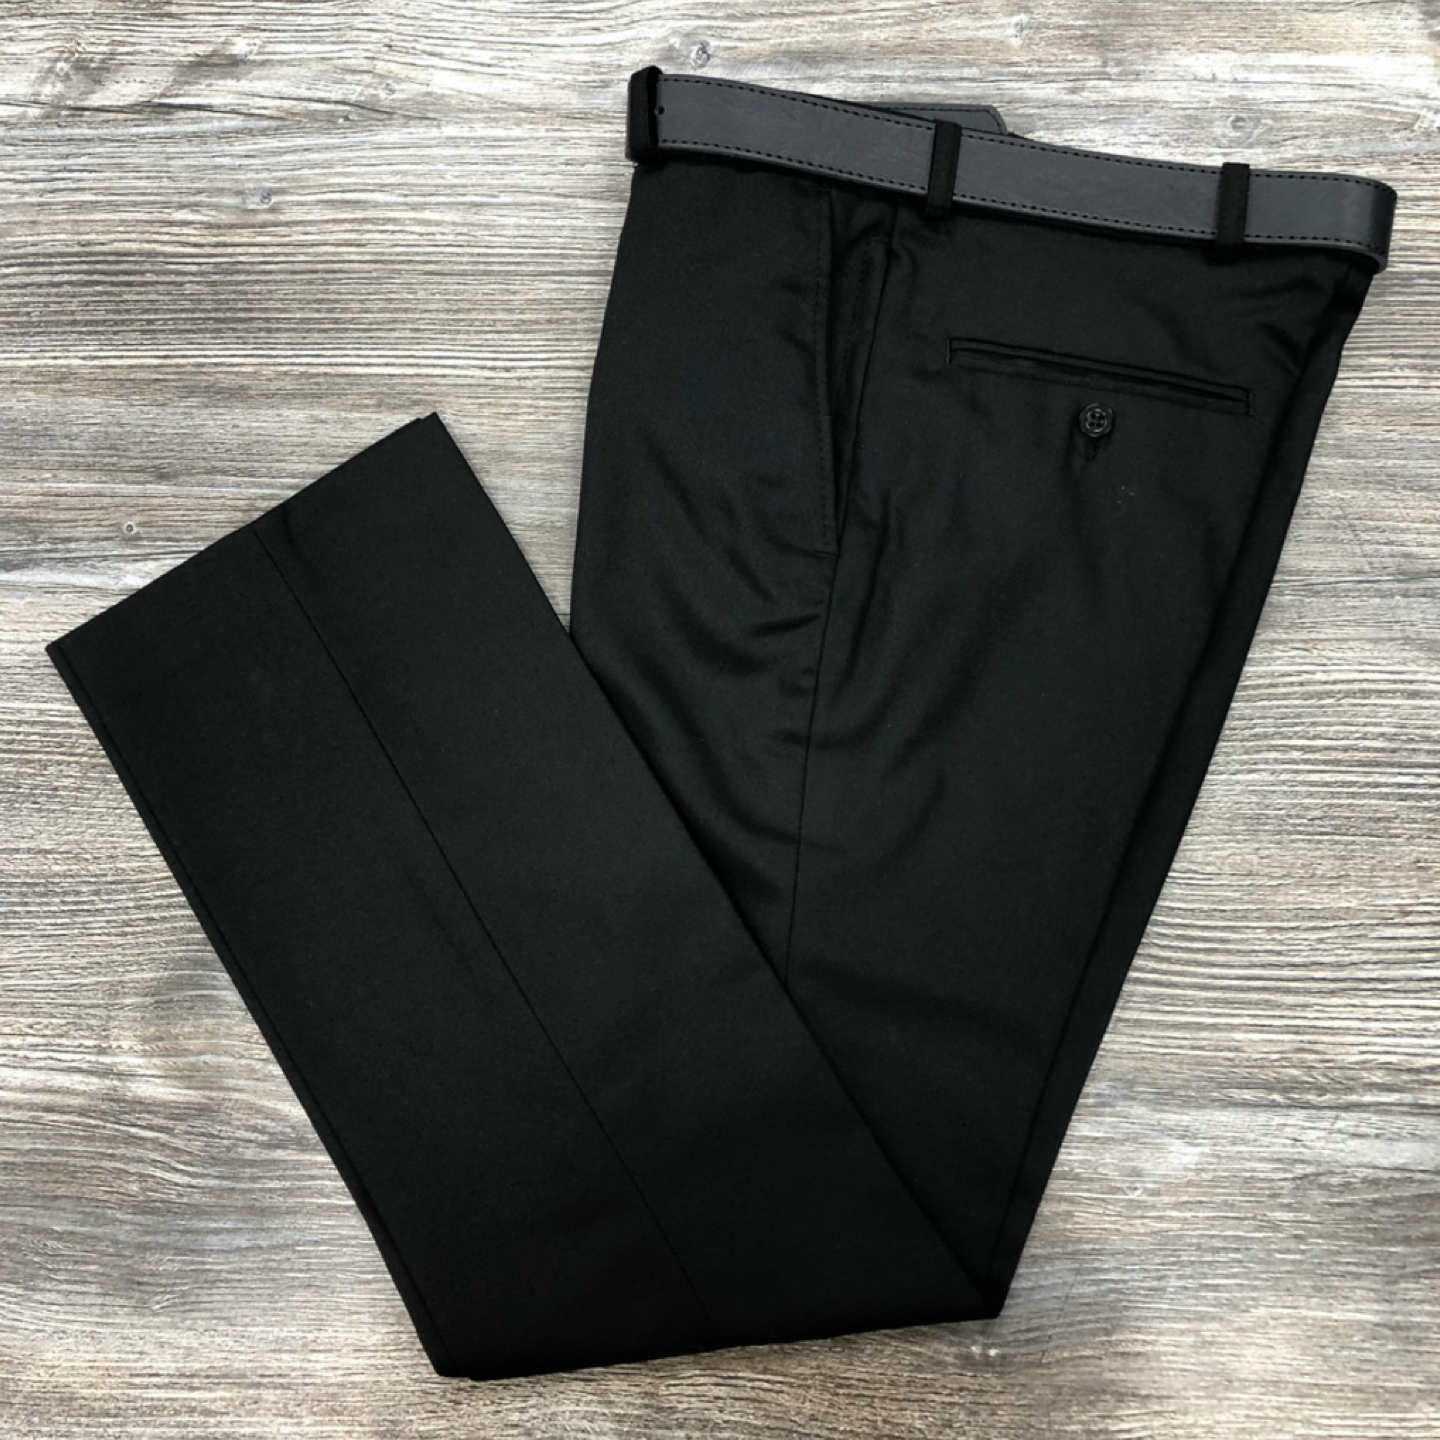 David Luke Black Trousers